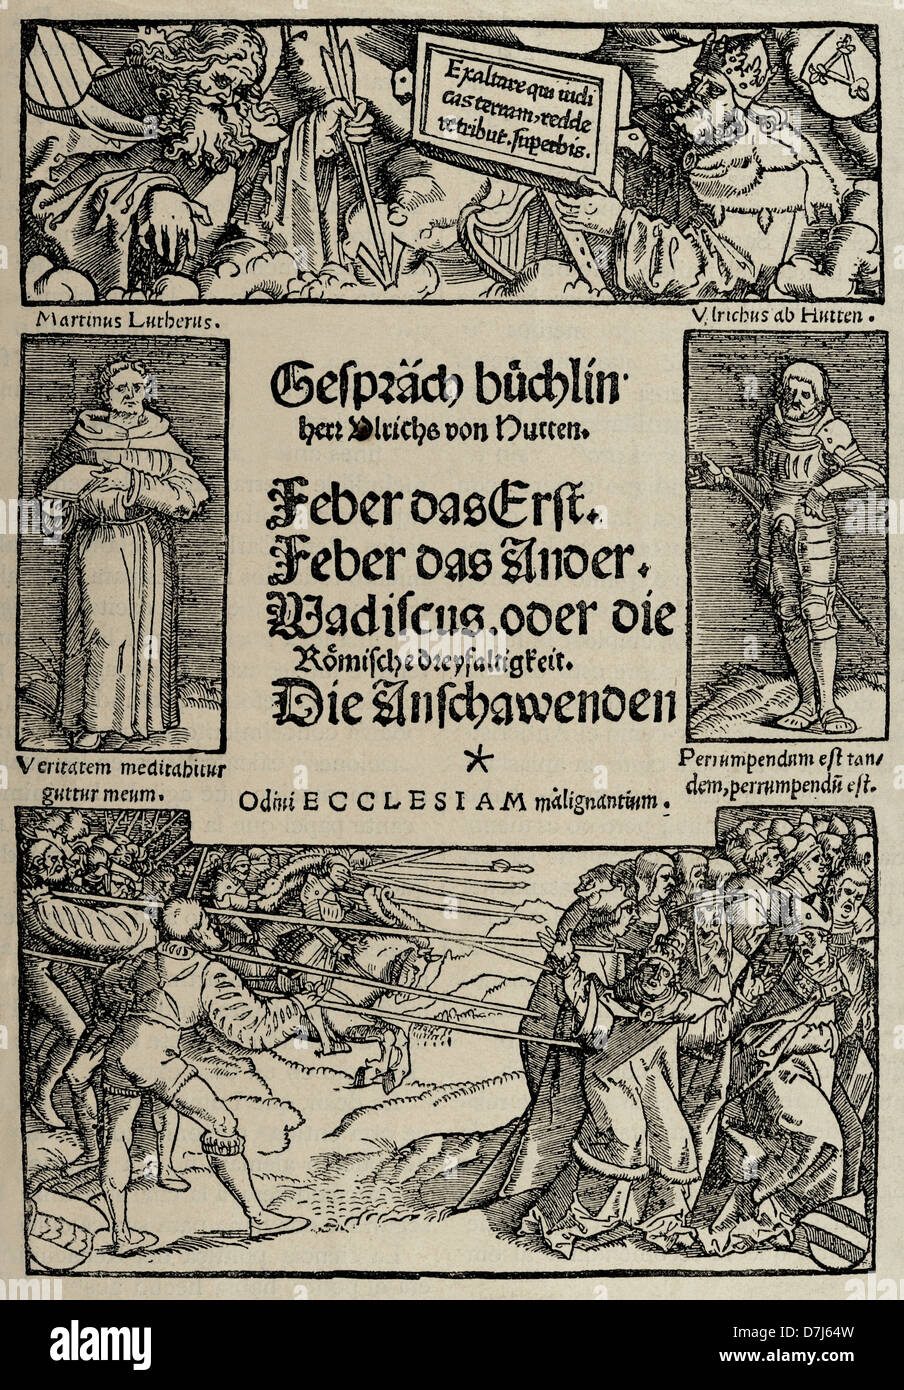 Ulrich von Hutten (1488-1523). German writer and theologian. Facsimile of the cover of the Booklet of Conversations. - Stock Image